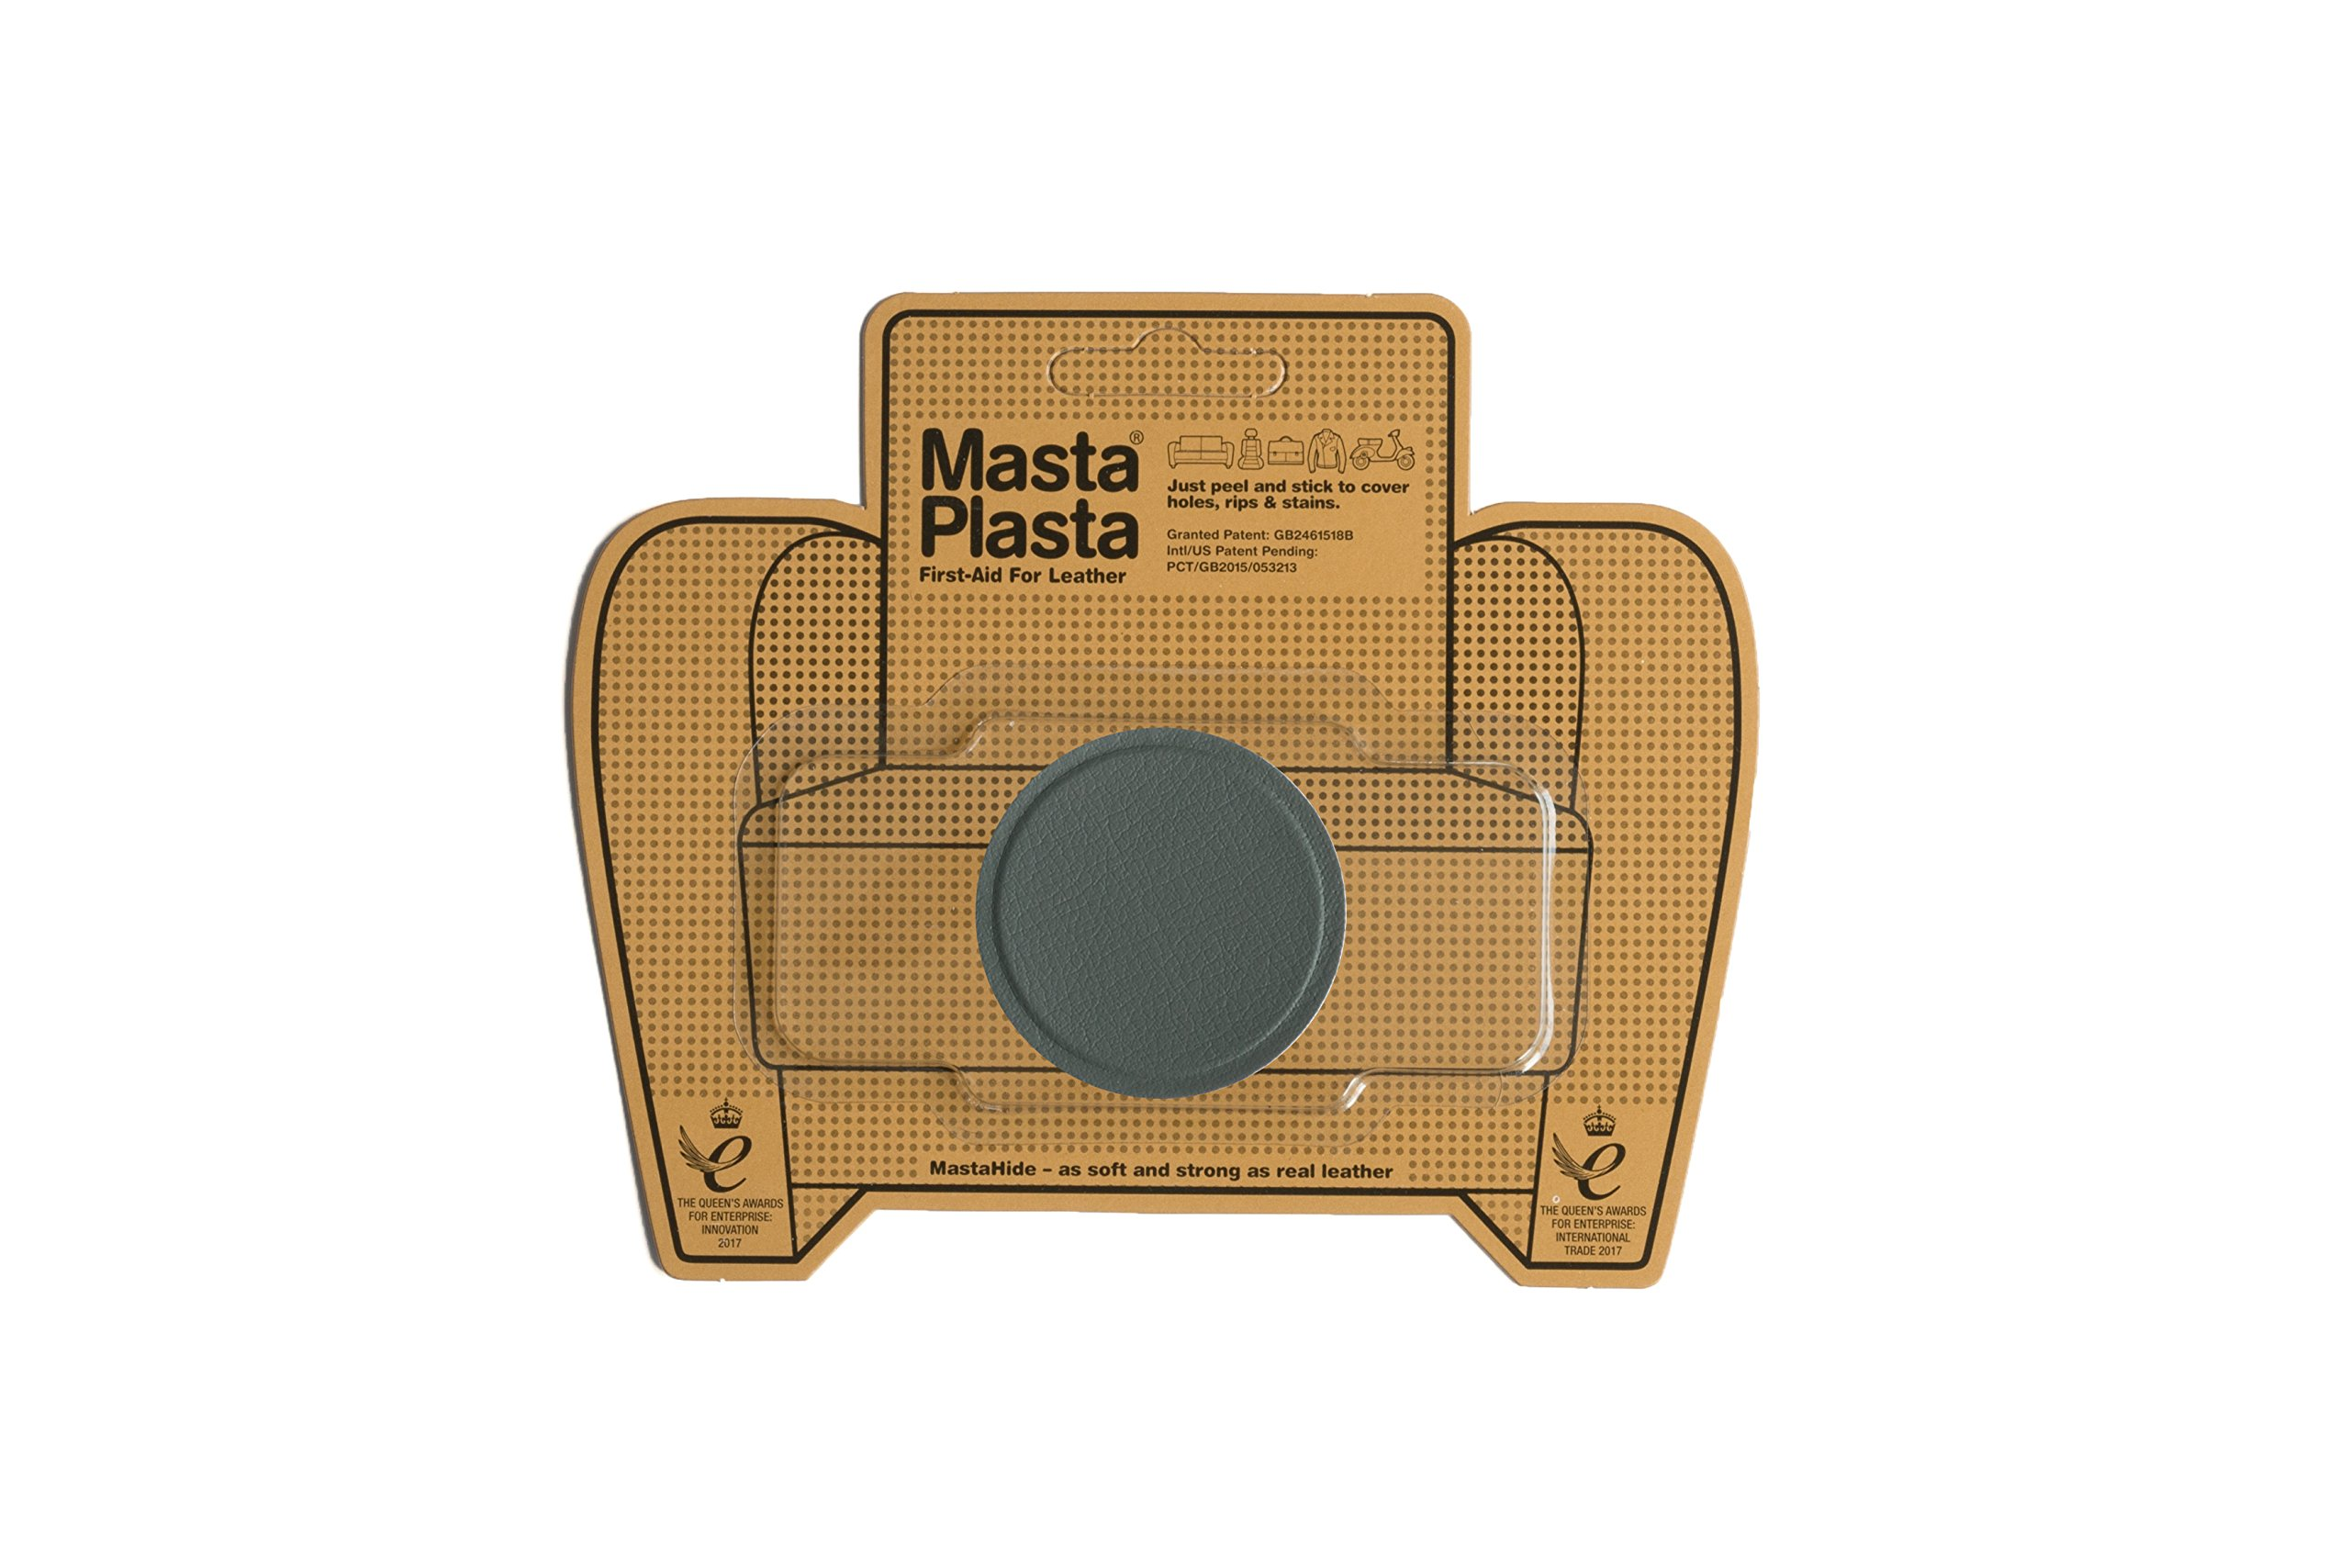 MastaPlasta Peel and Stick First-Aid Leather Repair Band-Aid. Plain circle design 2-inch wide. GREY